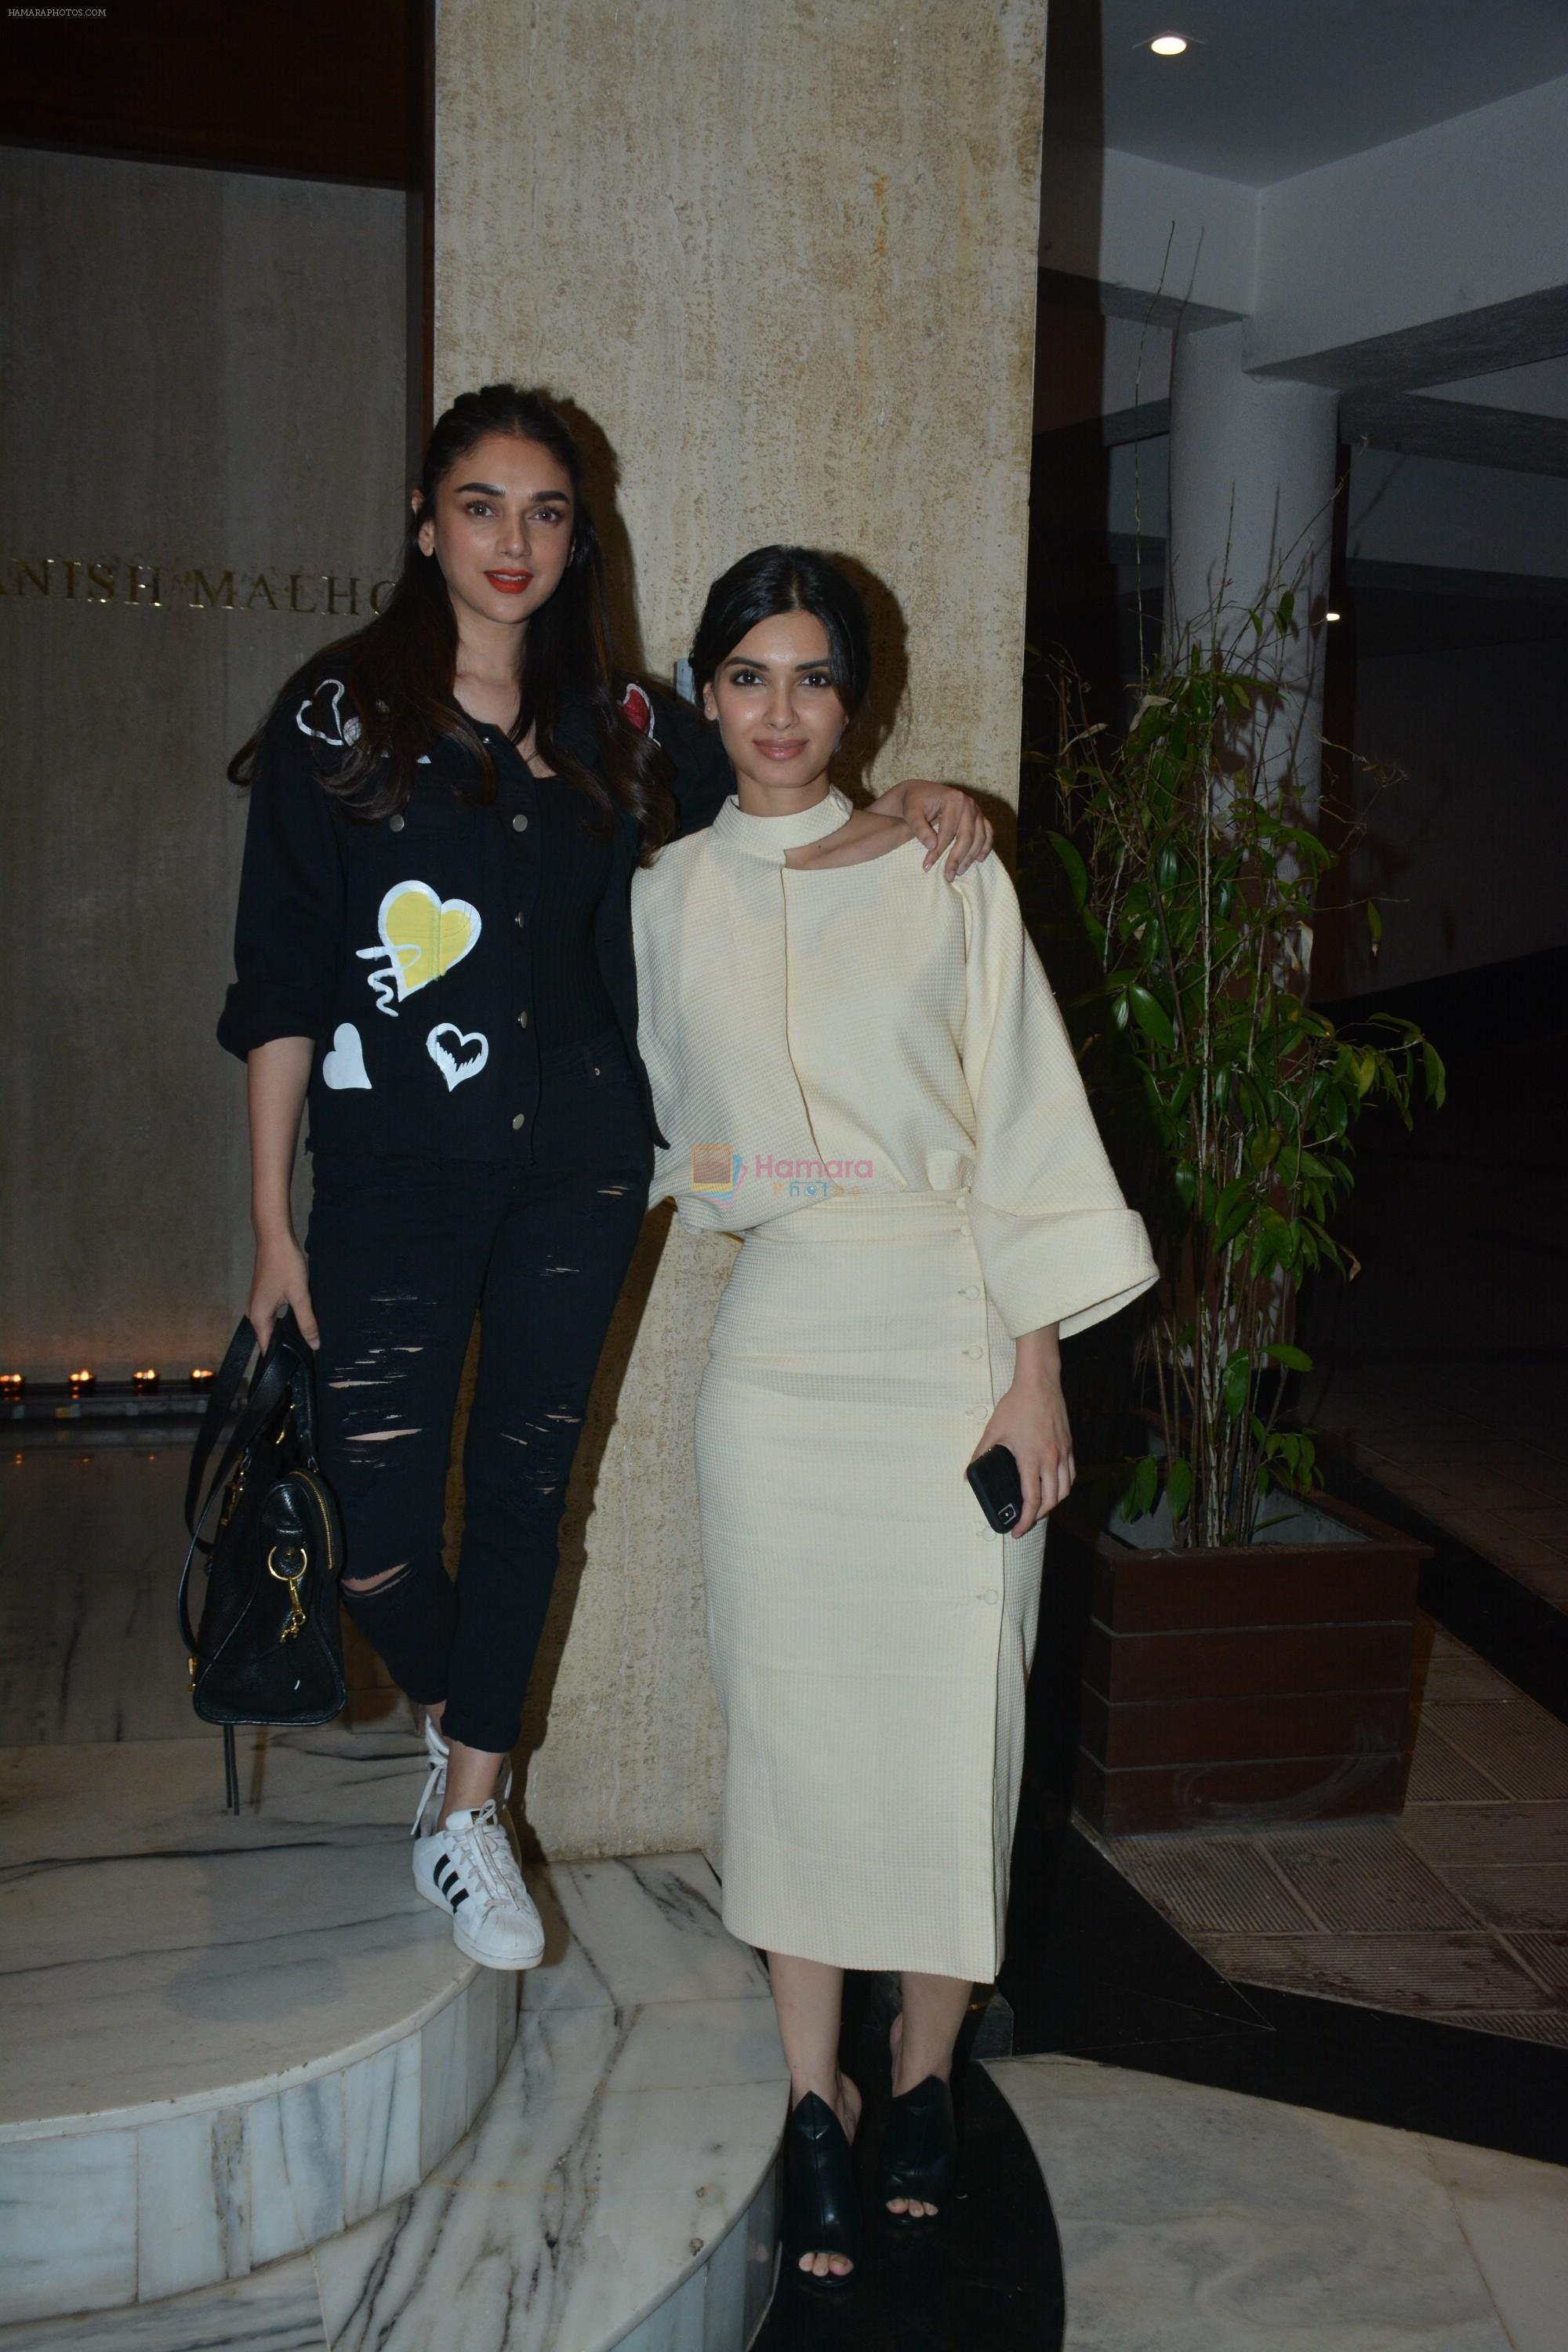 Diana Penty, Aditi Rao Hydari at Manish Malhotra's house on 13th March 2019